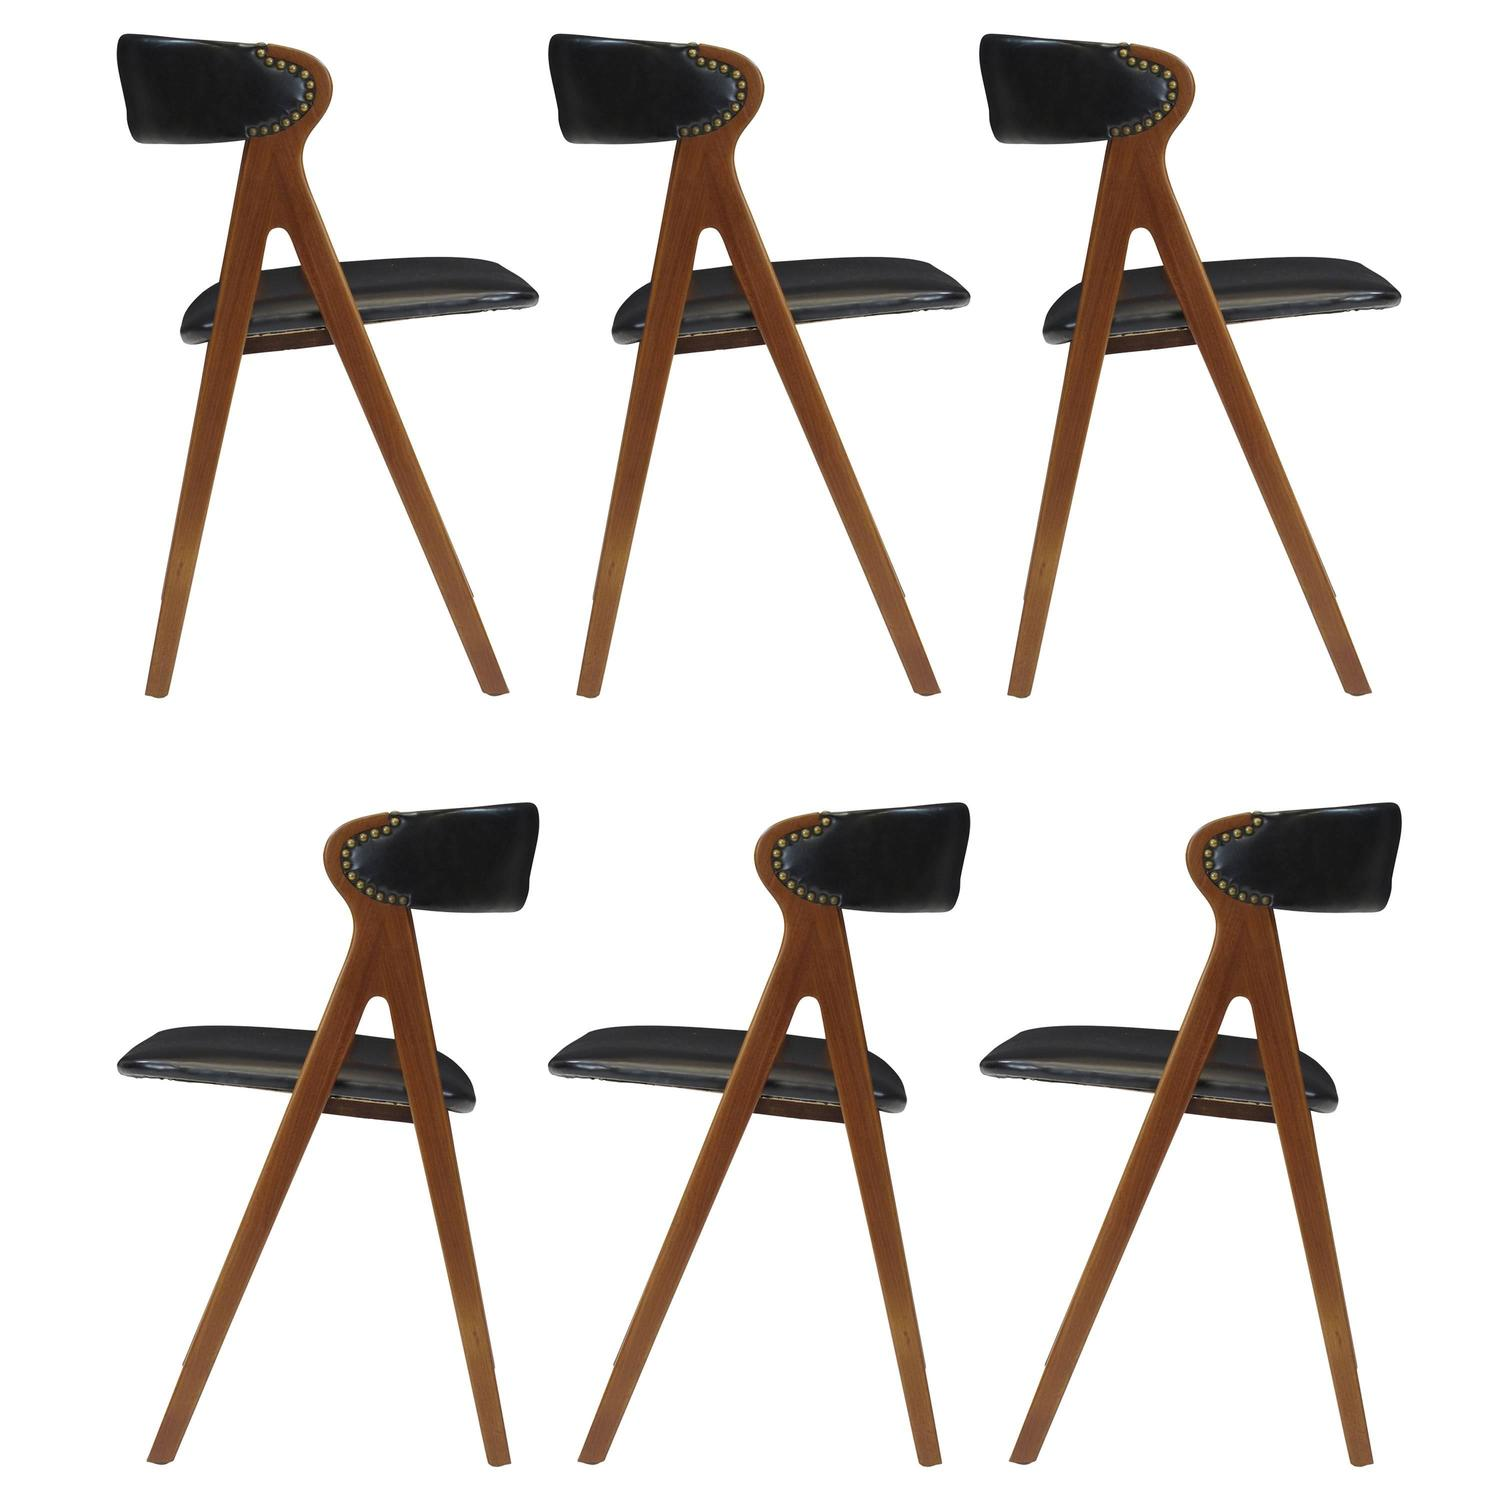 Difference Between Bar Stool And Counter Stool Images  : 3278632orgz from www.favefaves.com size 1500 x 1500 jpeg 97kB